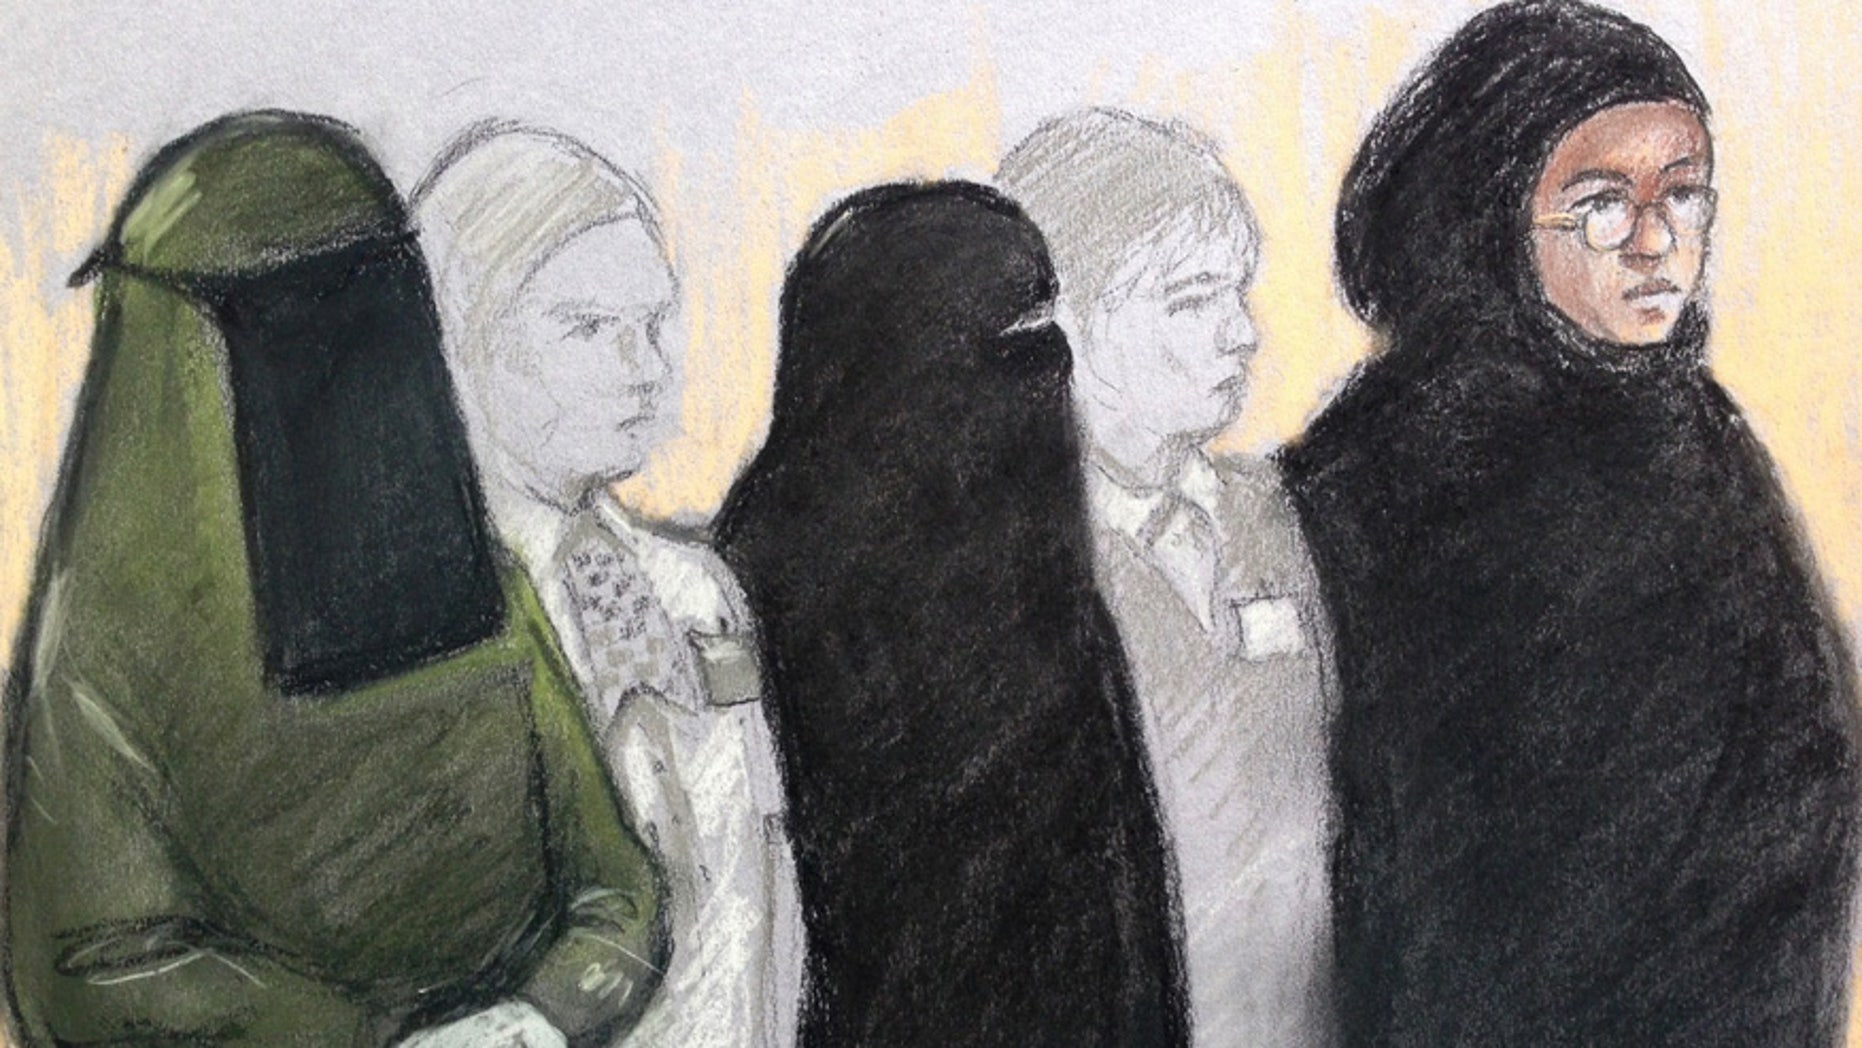 Court artist sketch by Elizabeth Cook of three women,  Mina Dich, 43, left, Rizlaine Boular, 21, centre,  and Khawla Barghouthi, 20, right,  appearing at Westminster Magistrates Court  in London charged with preparing a terrorist act and conspiracy to murder, Thursday May 11, 2017. Boular, of central London, was shot by police during a raid by elite armed offices at a terraced house in Harlesden Road, north London, on April 27. (Elizabeth Cook/PA via AP)